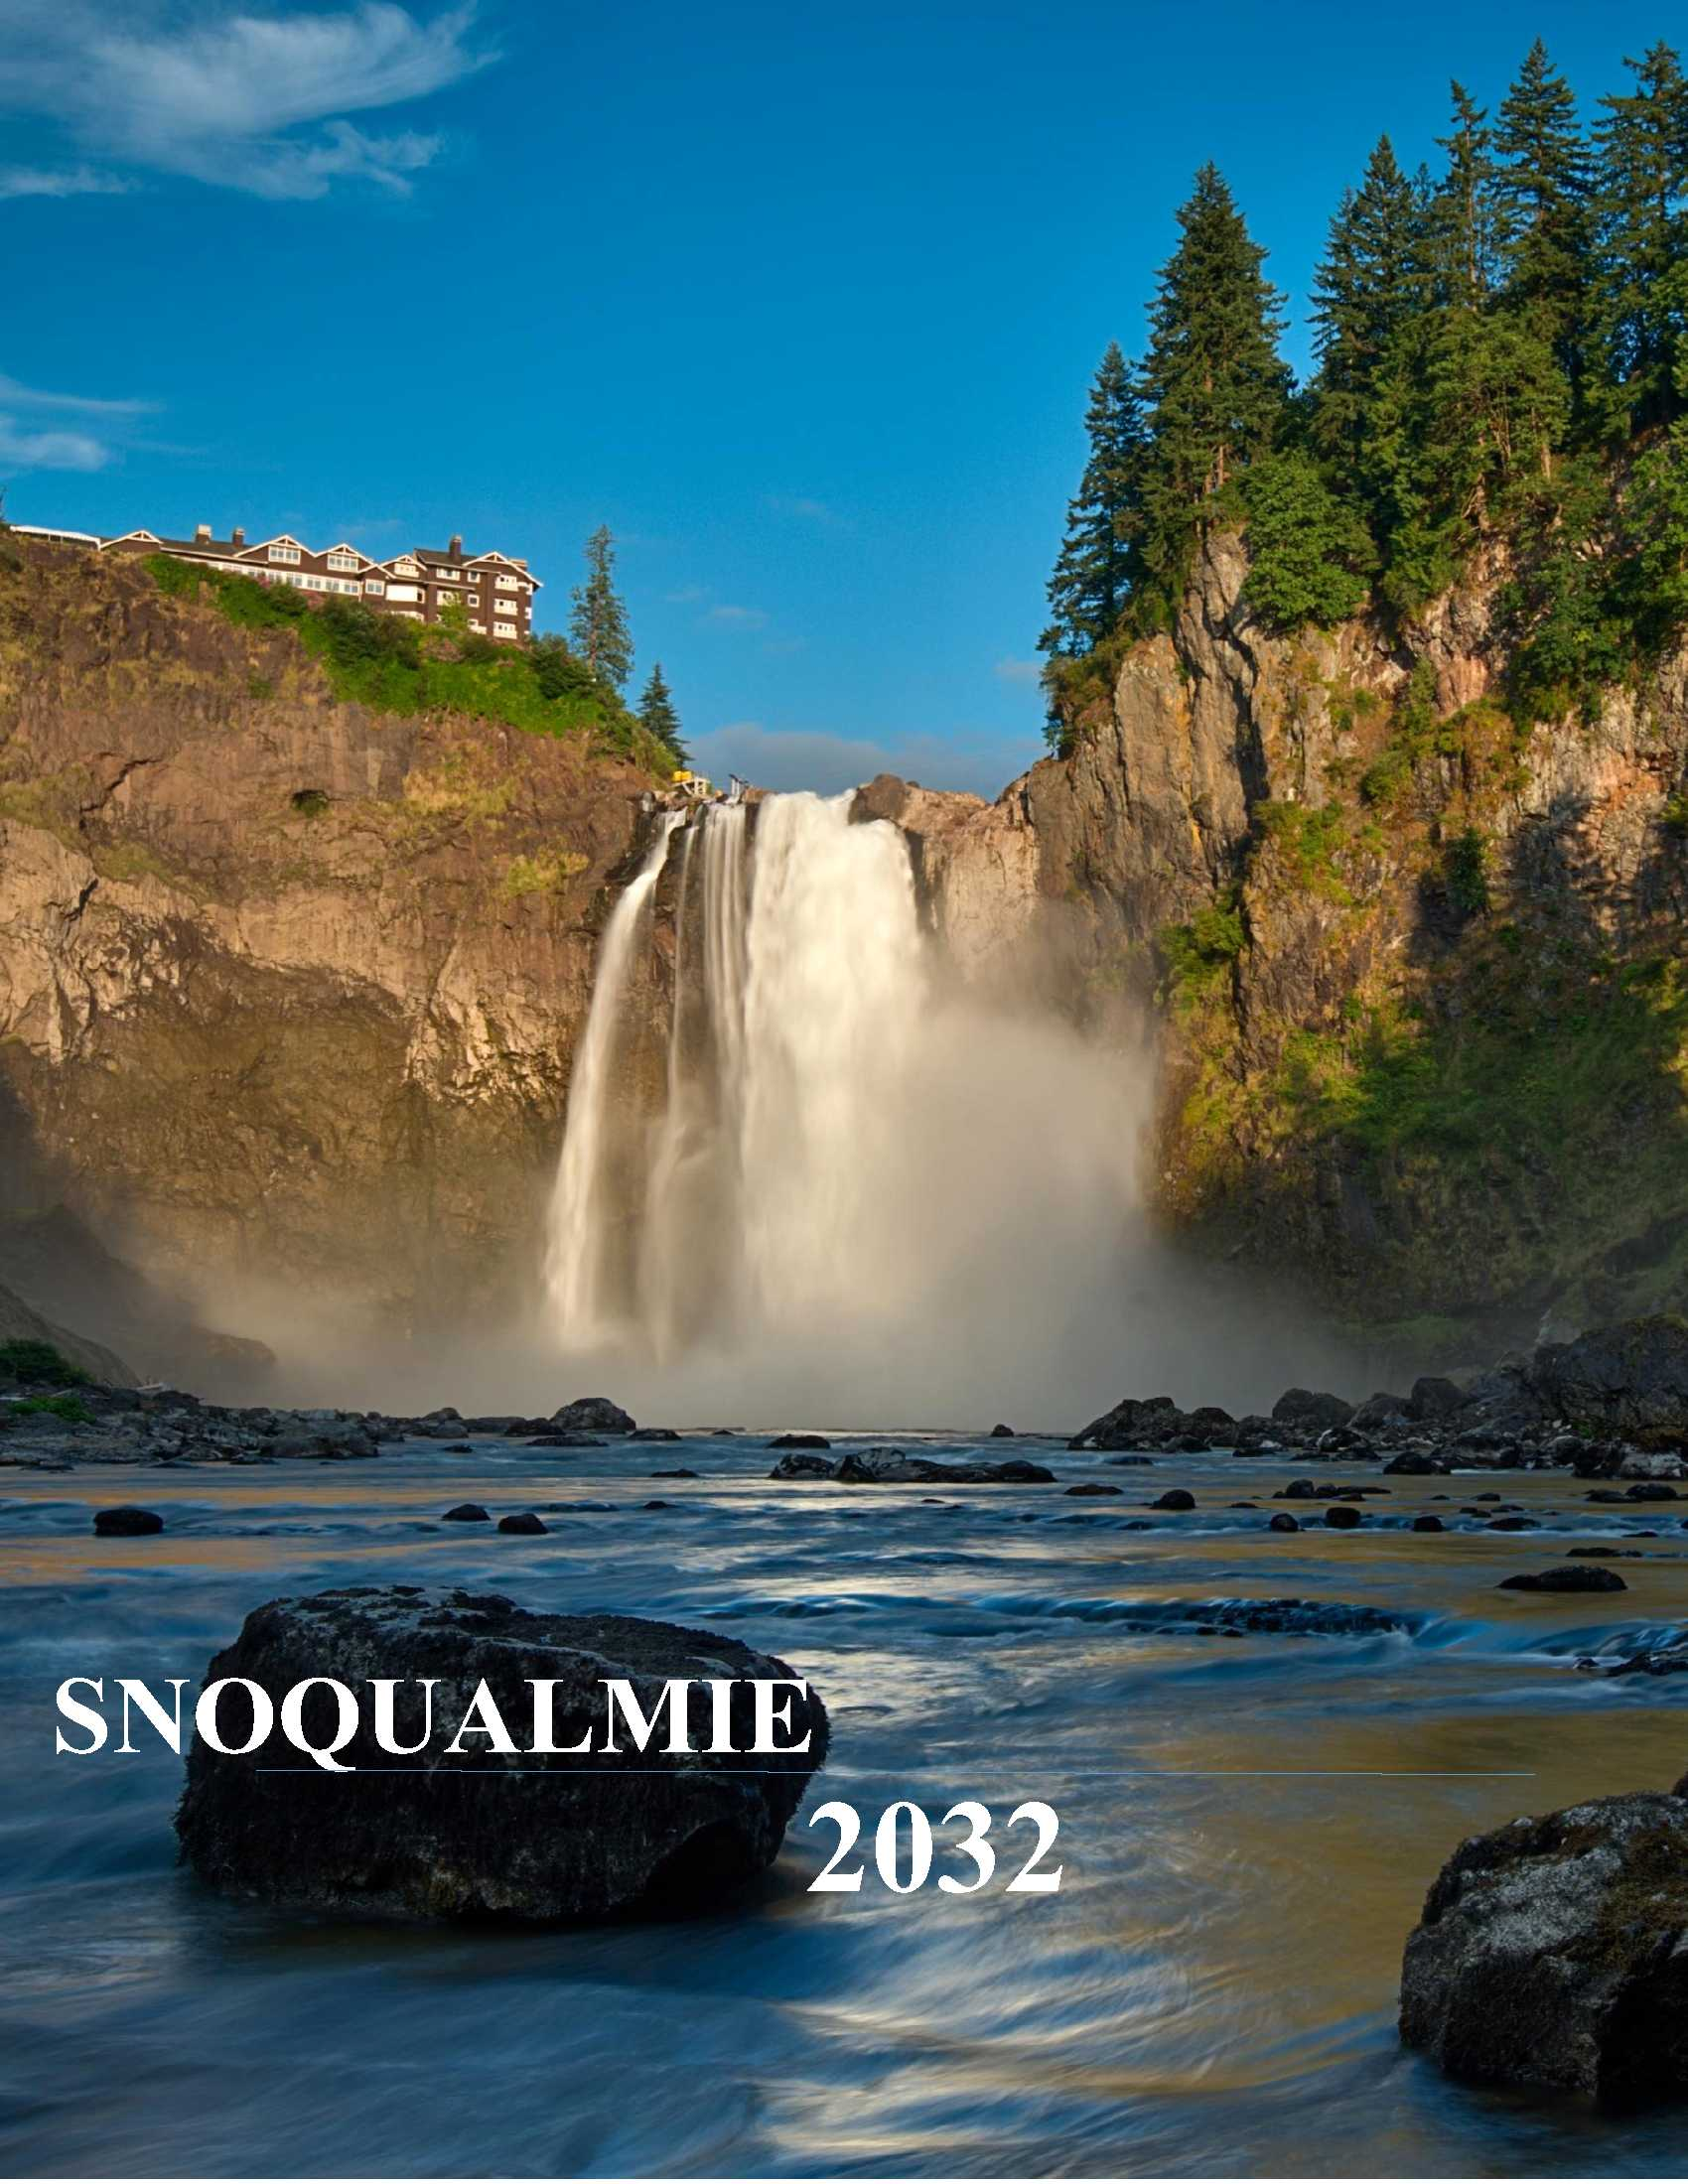 This is the cover page of the City's Comprehensive Plan showing Snoqualmie Falls